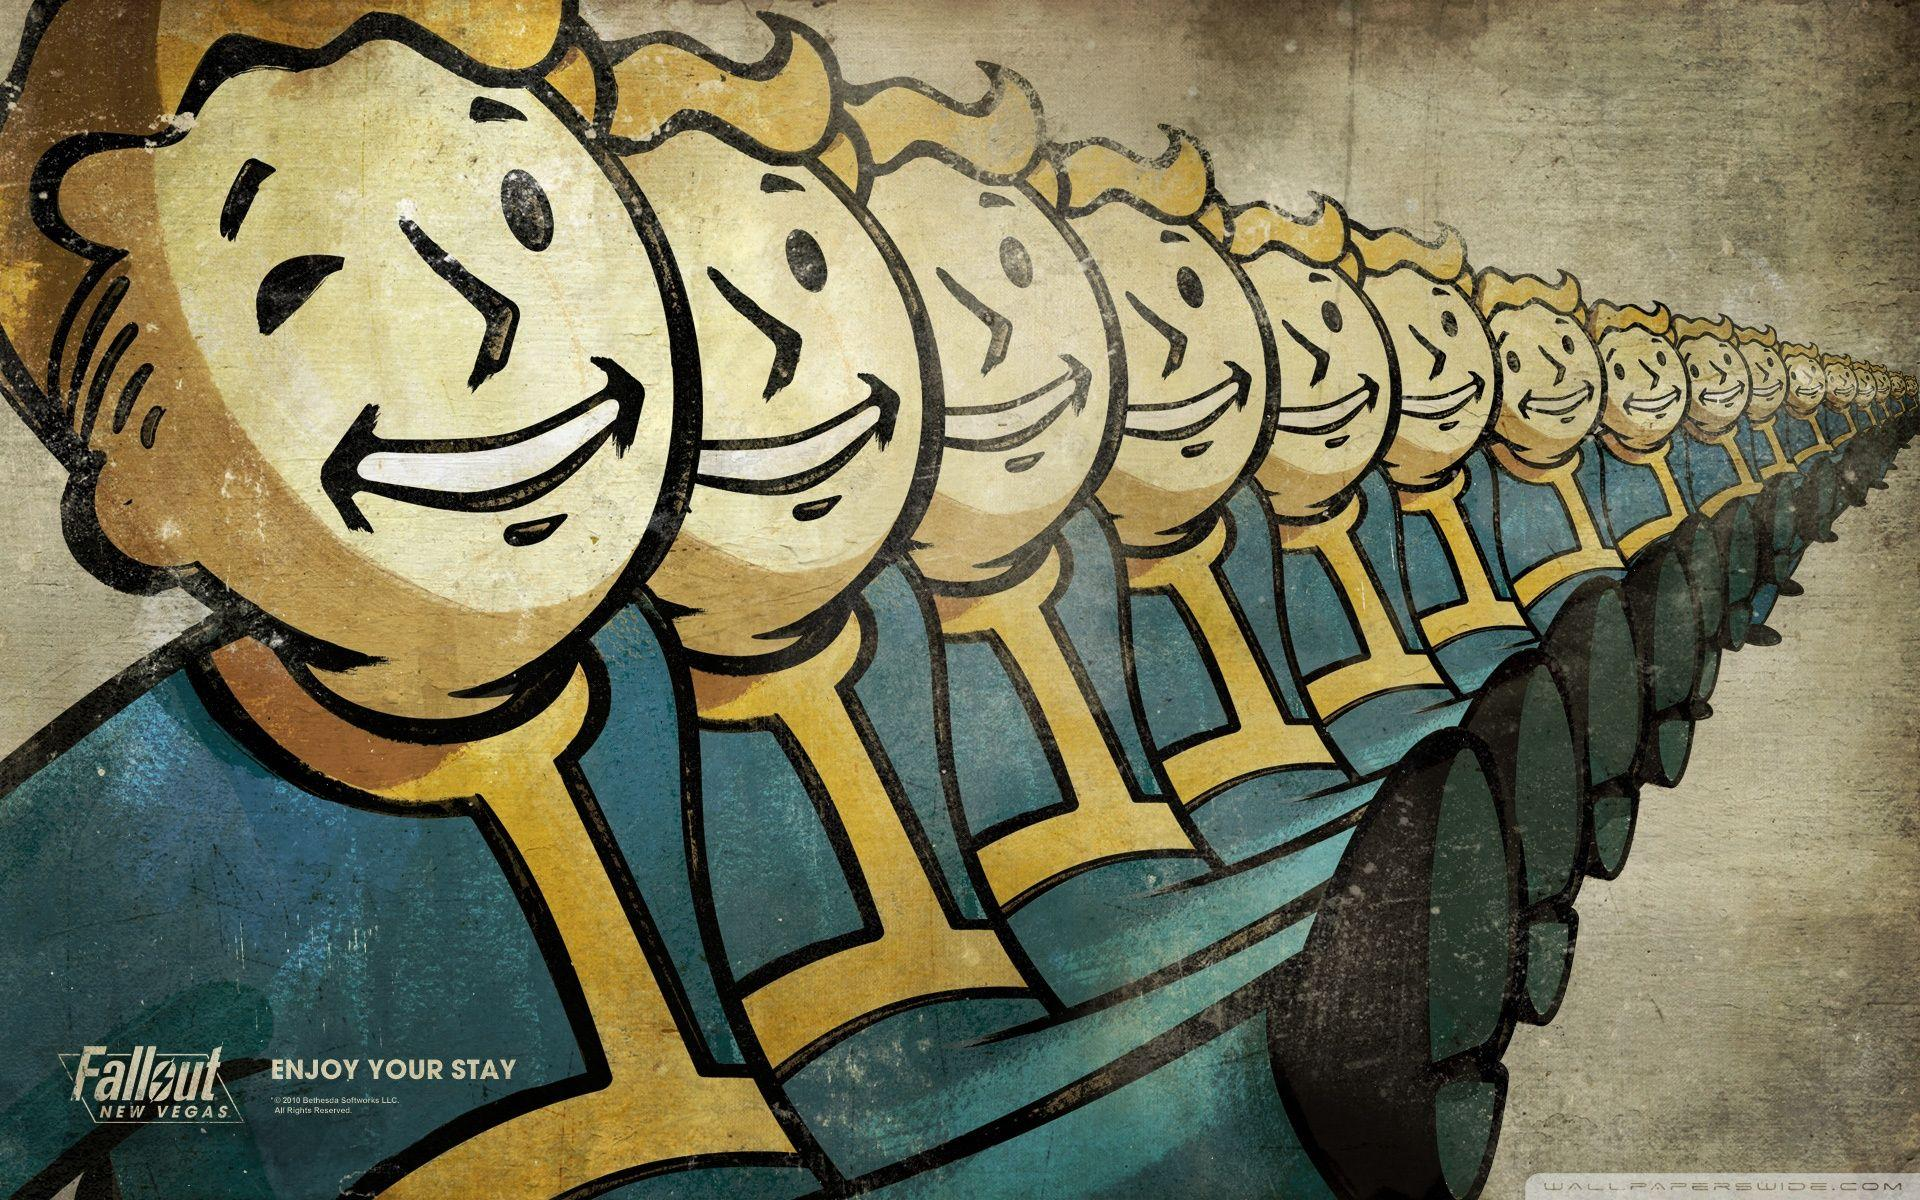 How the Bethesda Acquisition Could Affect the Gaming Industry